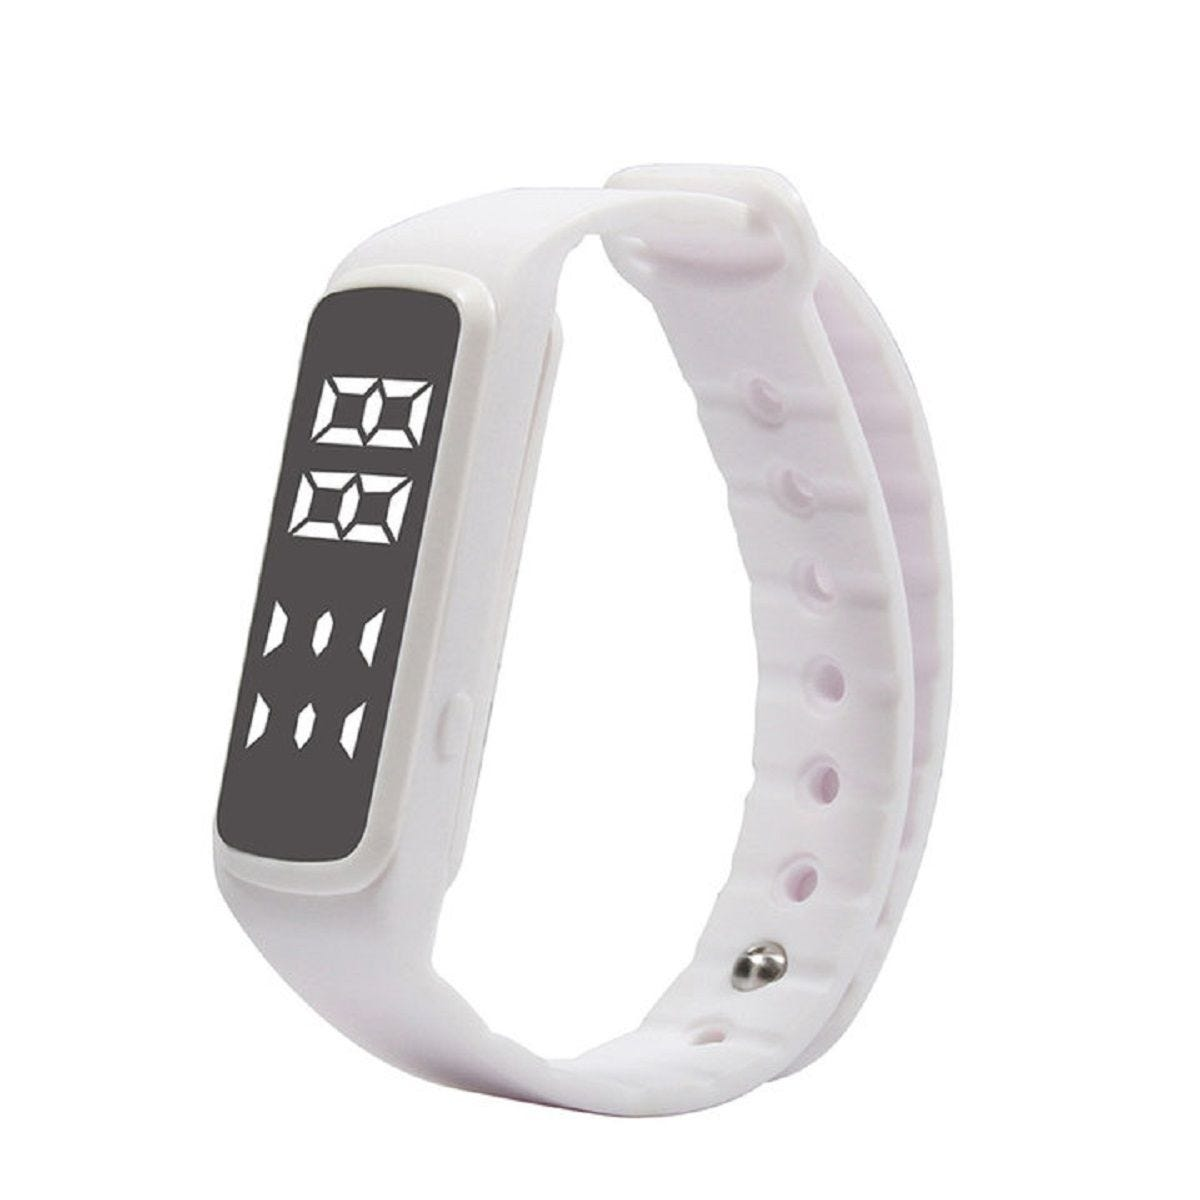 Aquarius AQ114 Teen Fitness Tracker - White